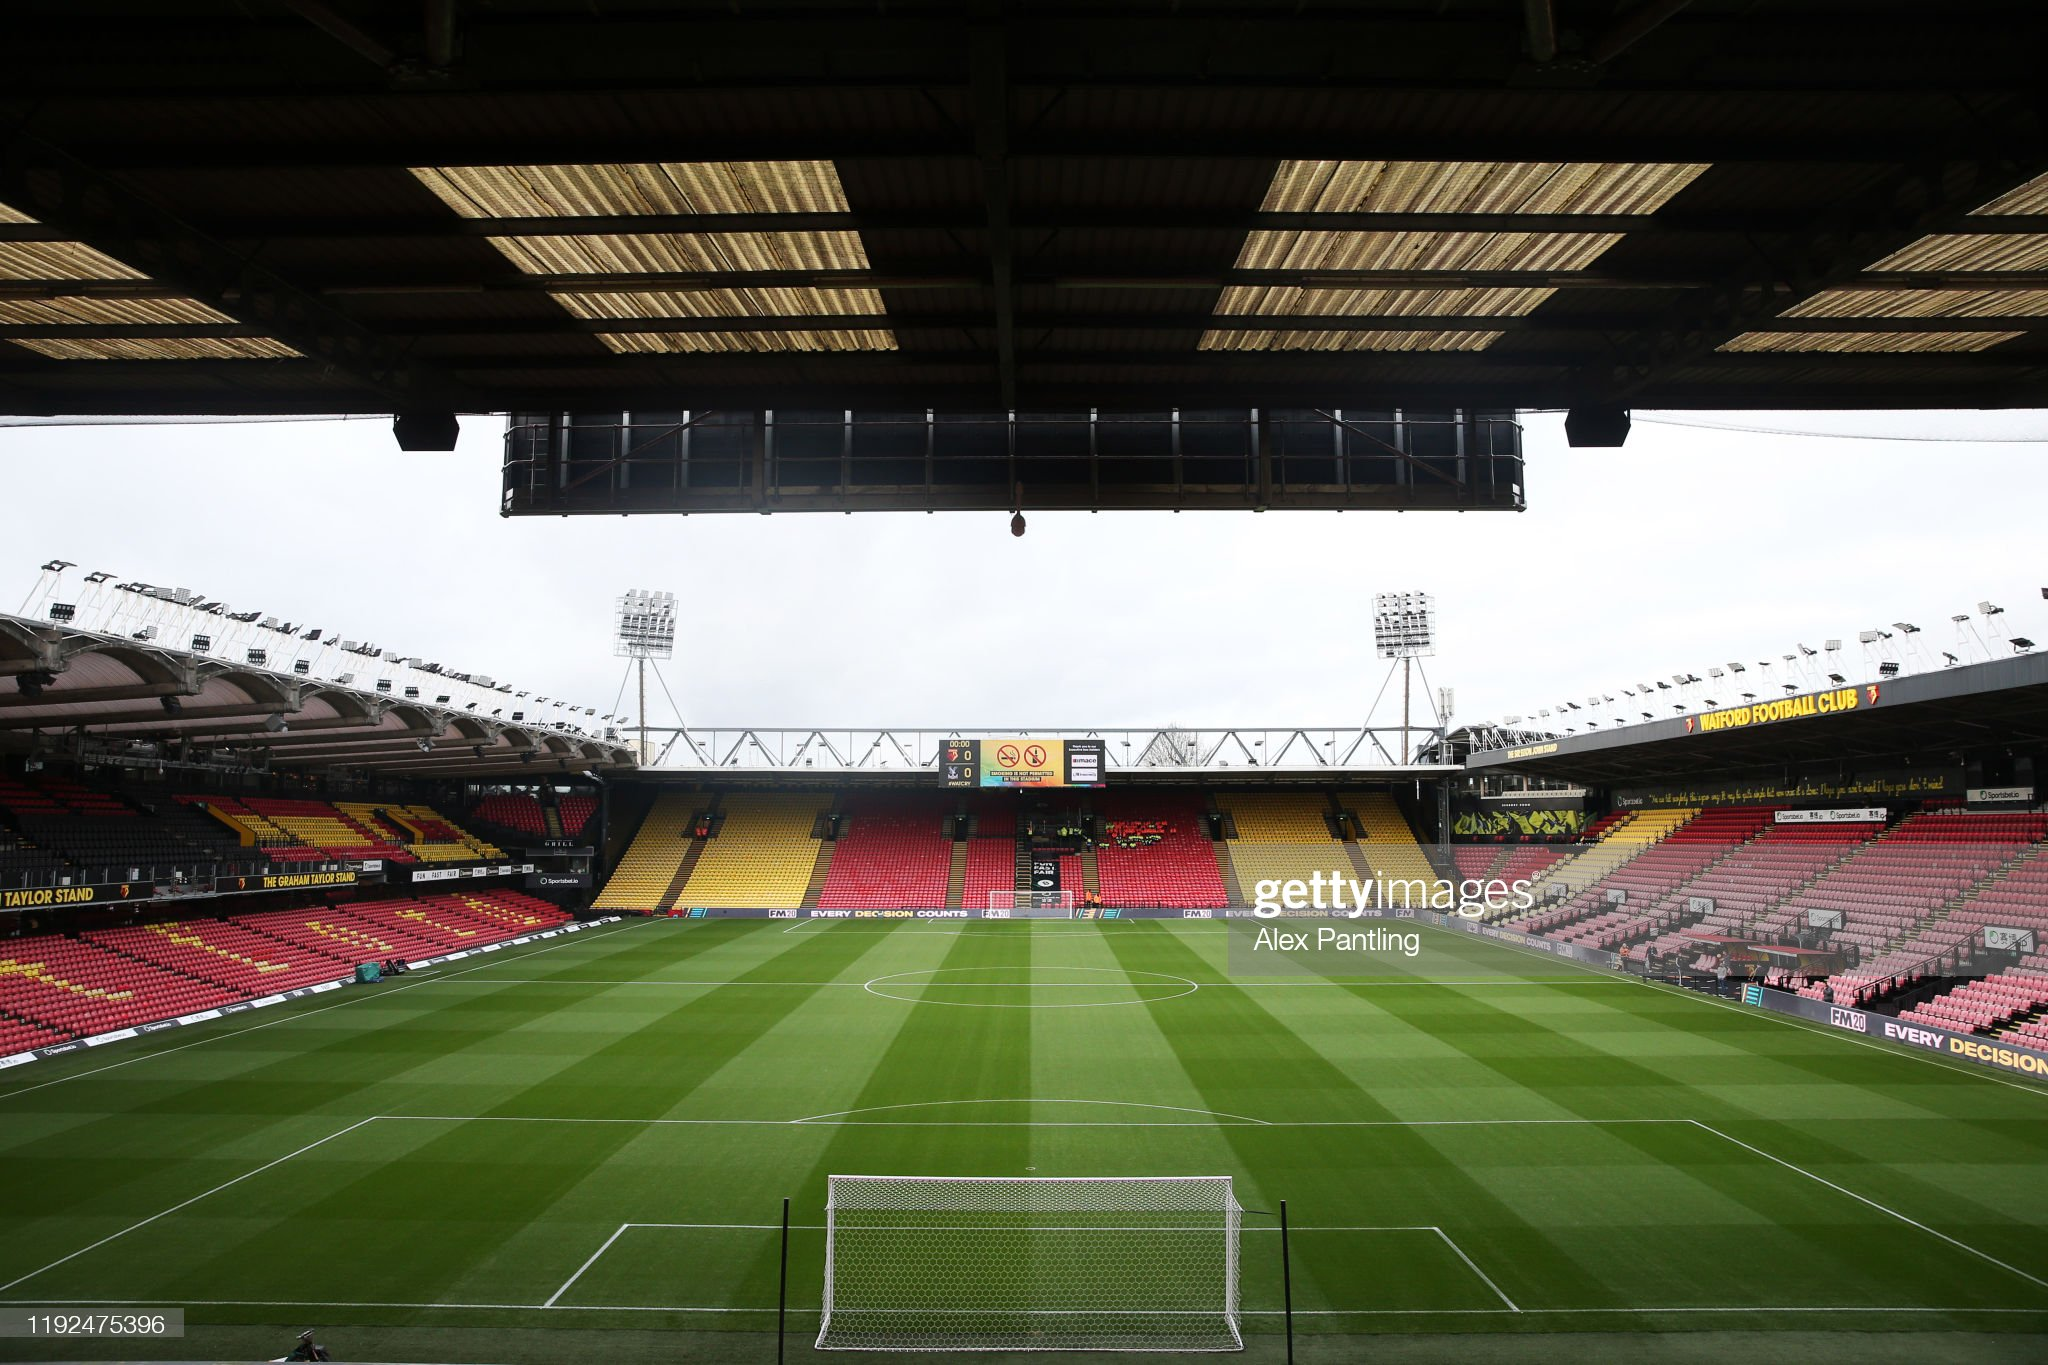 Watford v Tottenham preview, prediction and odds